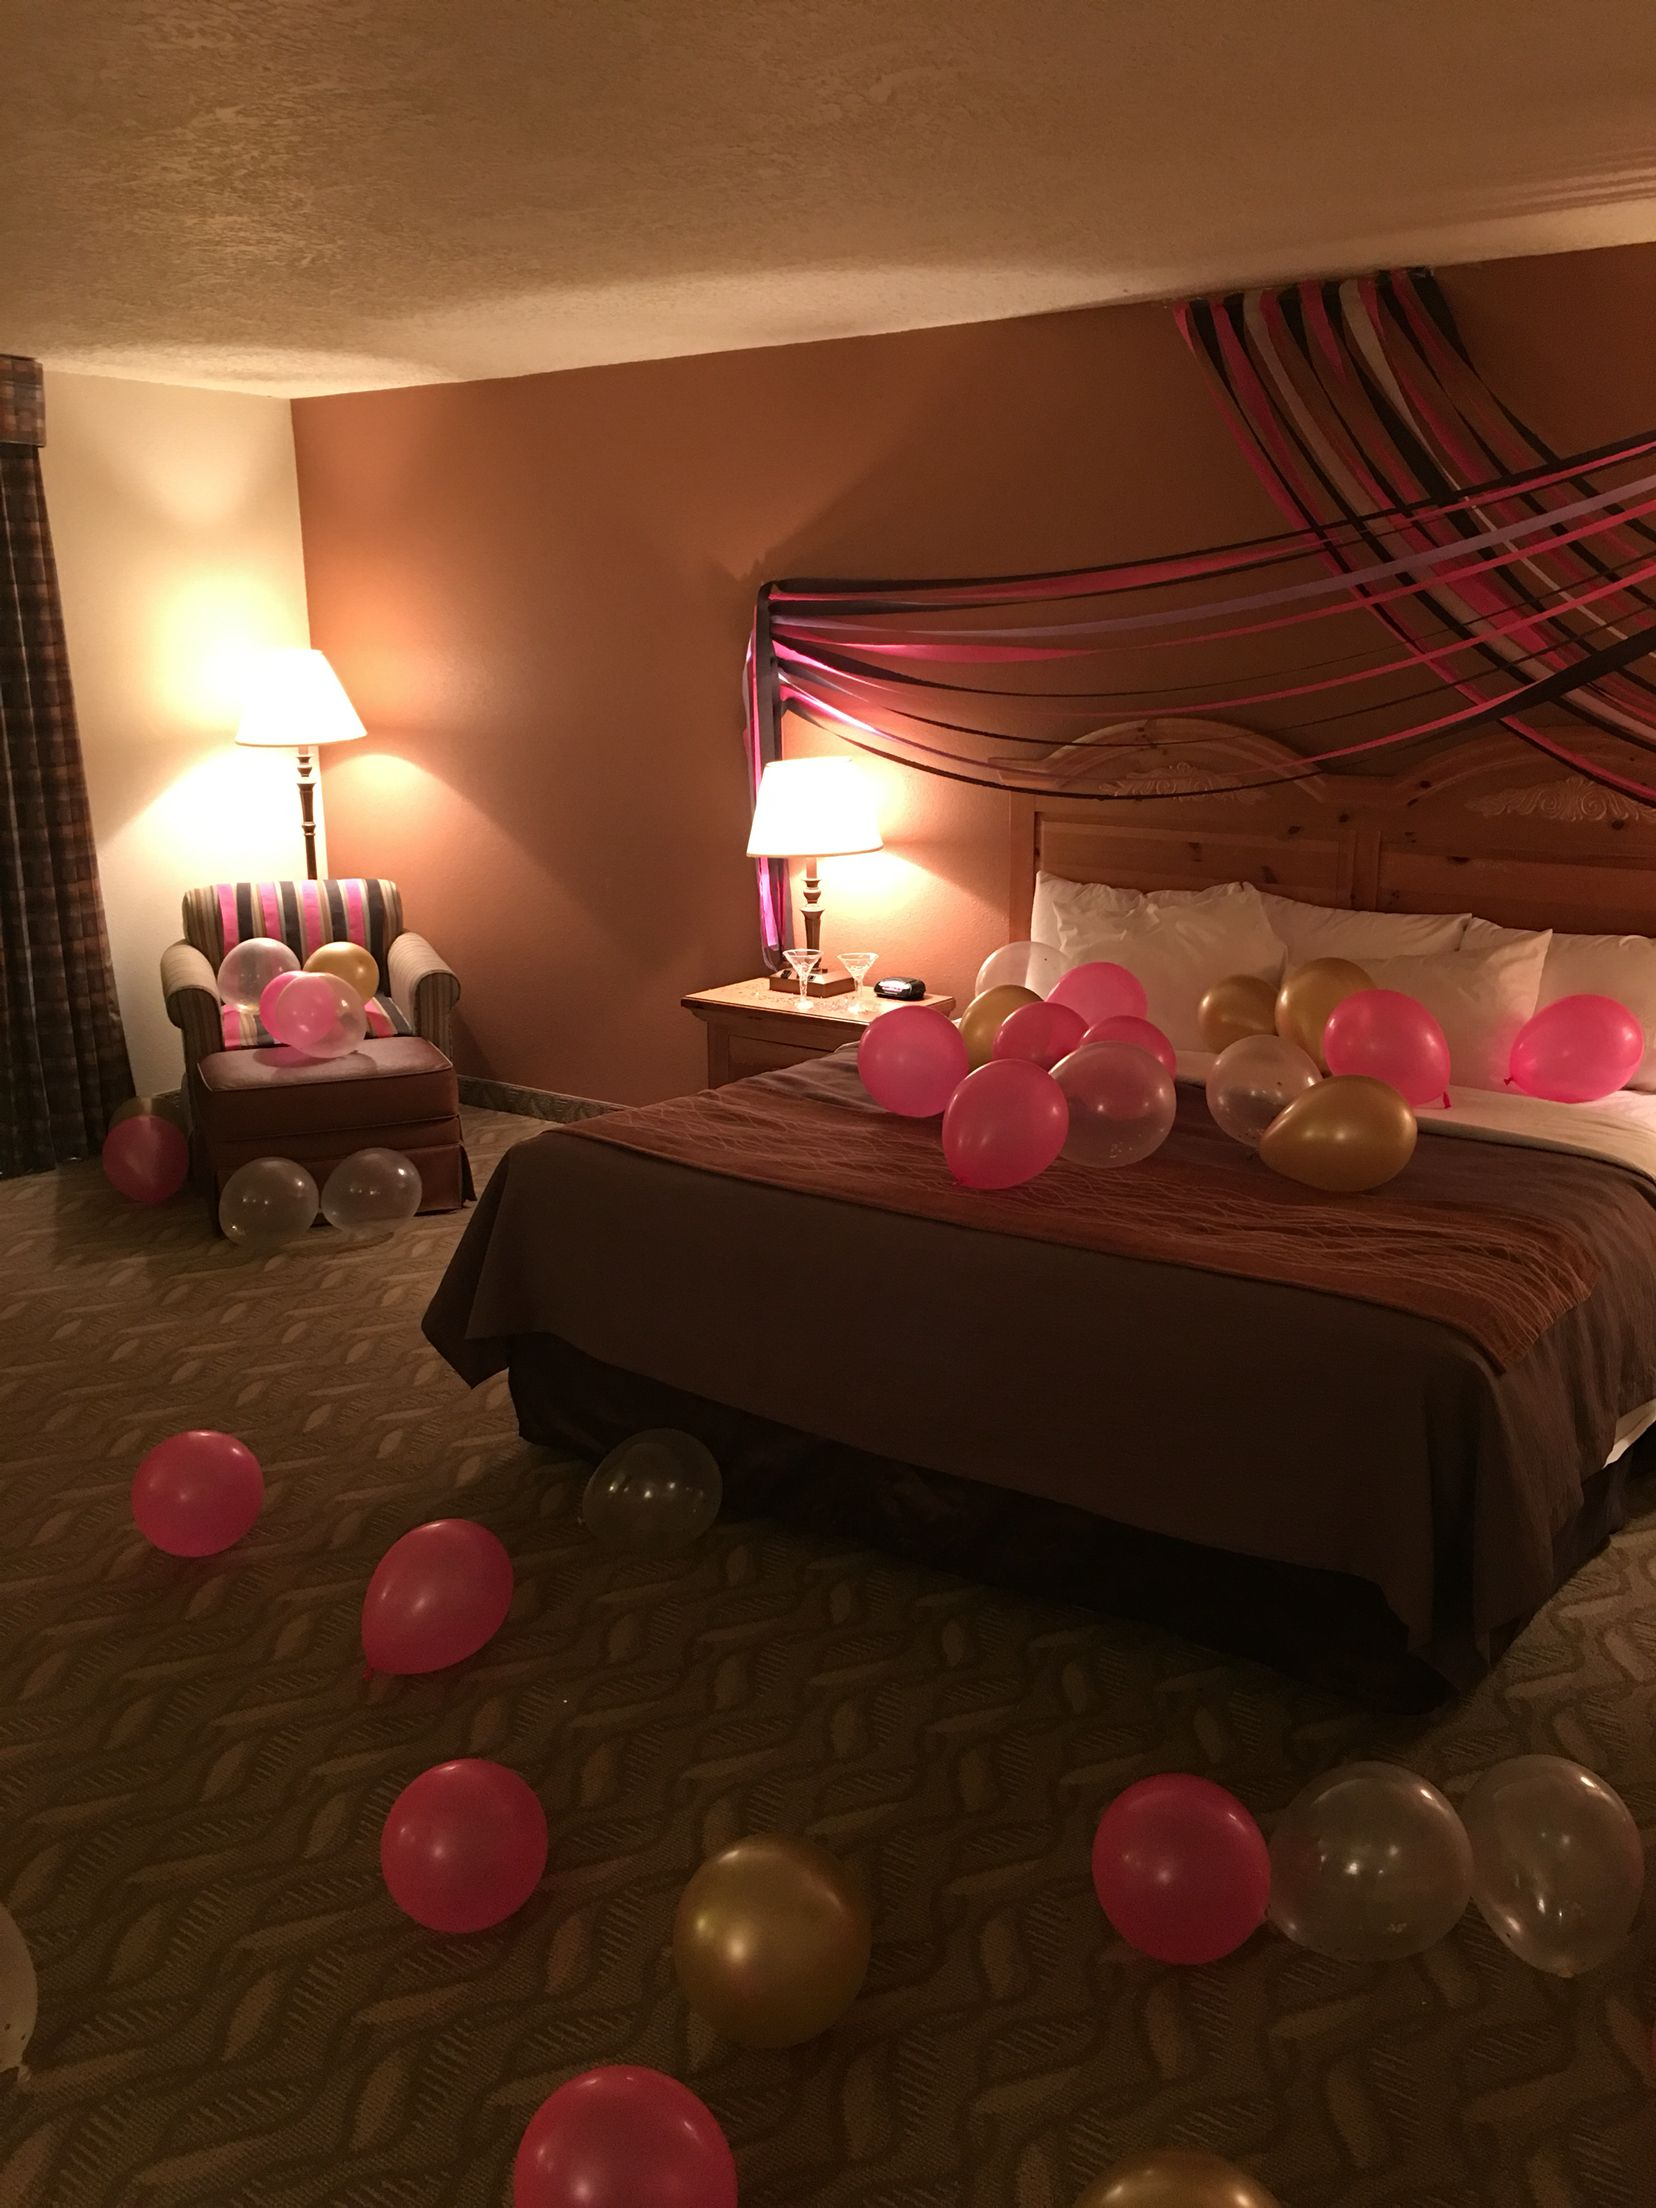 Surprise birthday hotel decor for my best friend for Room decor ideas for birthday